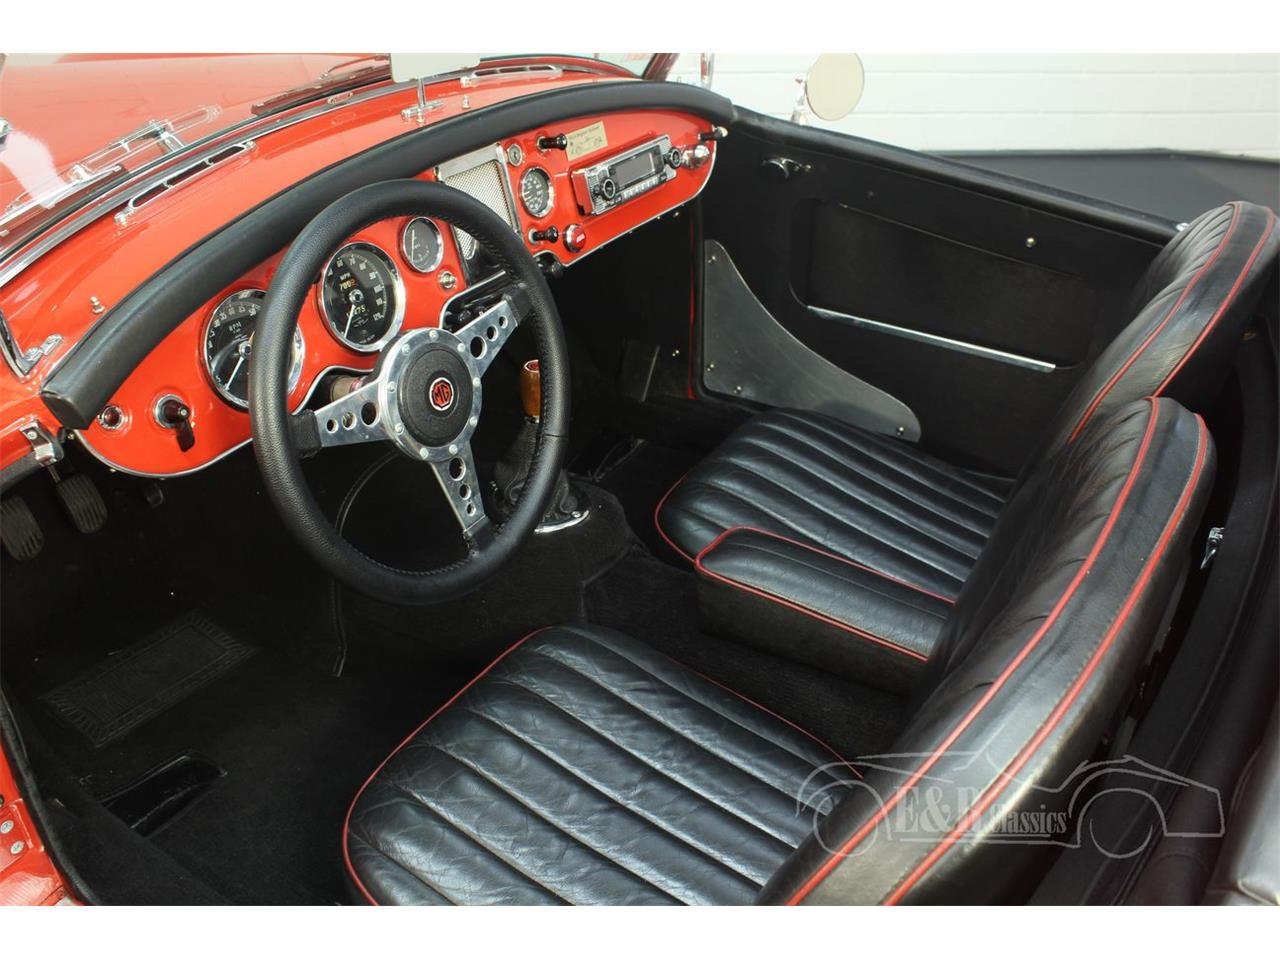 Large Picture of 1962 MG MGA located in Noord-Brabant - QKGO